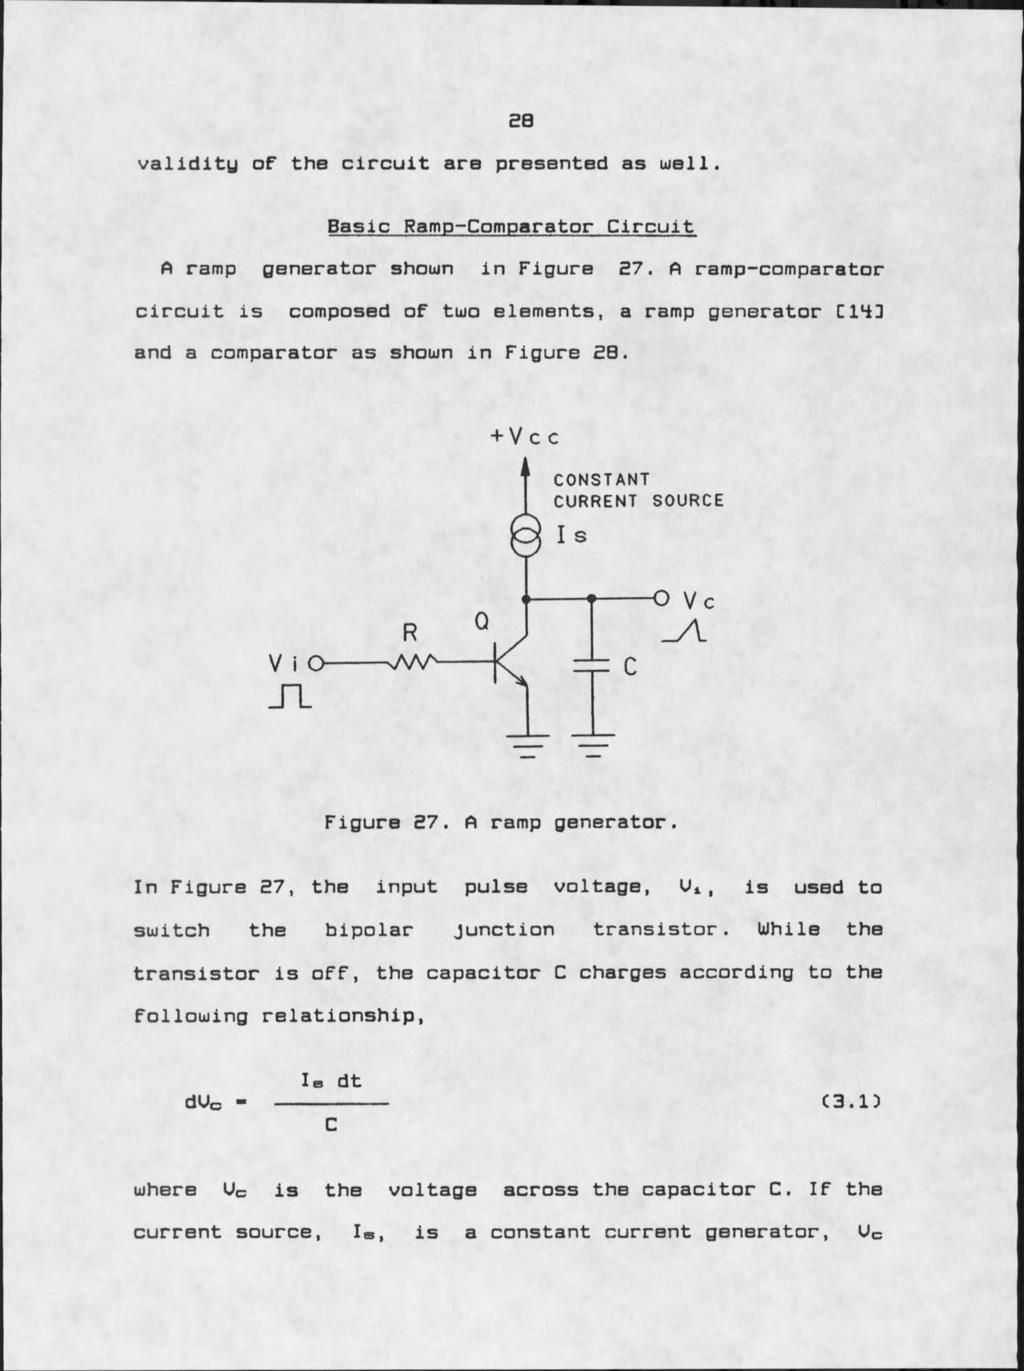 Firing Circuits For Three Phase Power Electronic Pdf Fairchildsemi Com Ds 2n 2n3904 Below Is A Sample Circuit 28 Validity Of The Are Presented As Well Basic Ramp Comparator